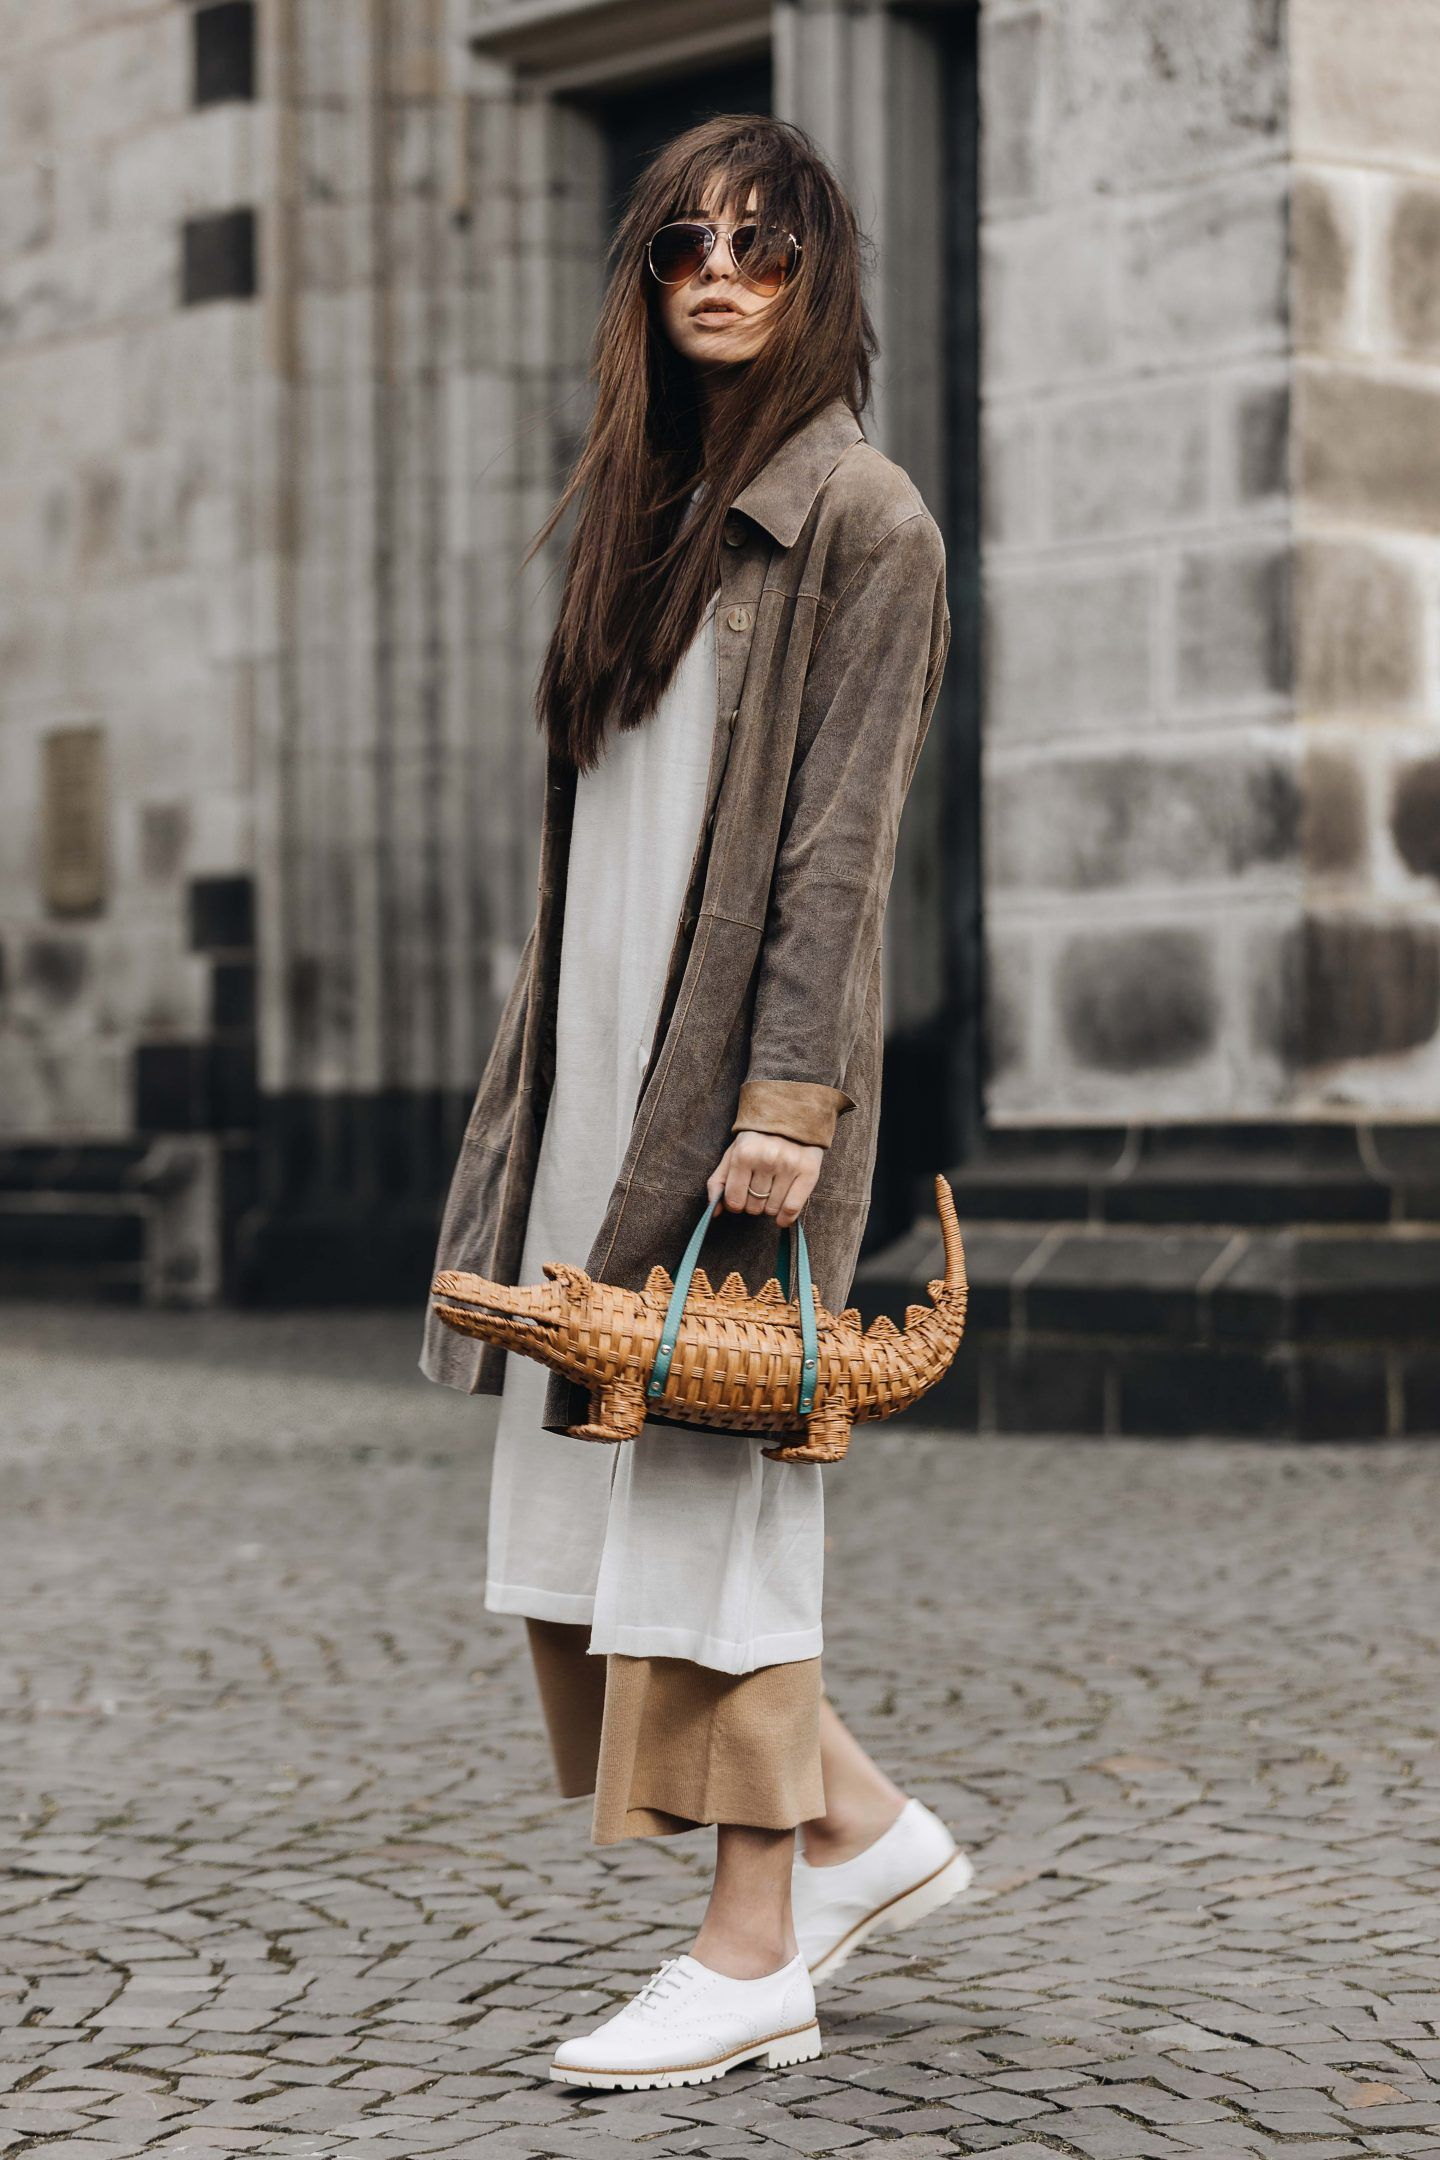 aacb124118de ... Alligator Adoption - Rattan Bag by Kate Spade New York  outfit  style   styleblogger